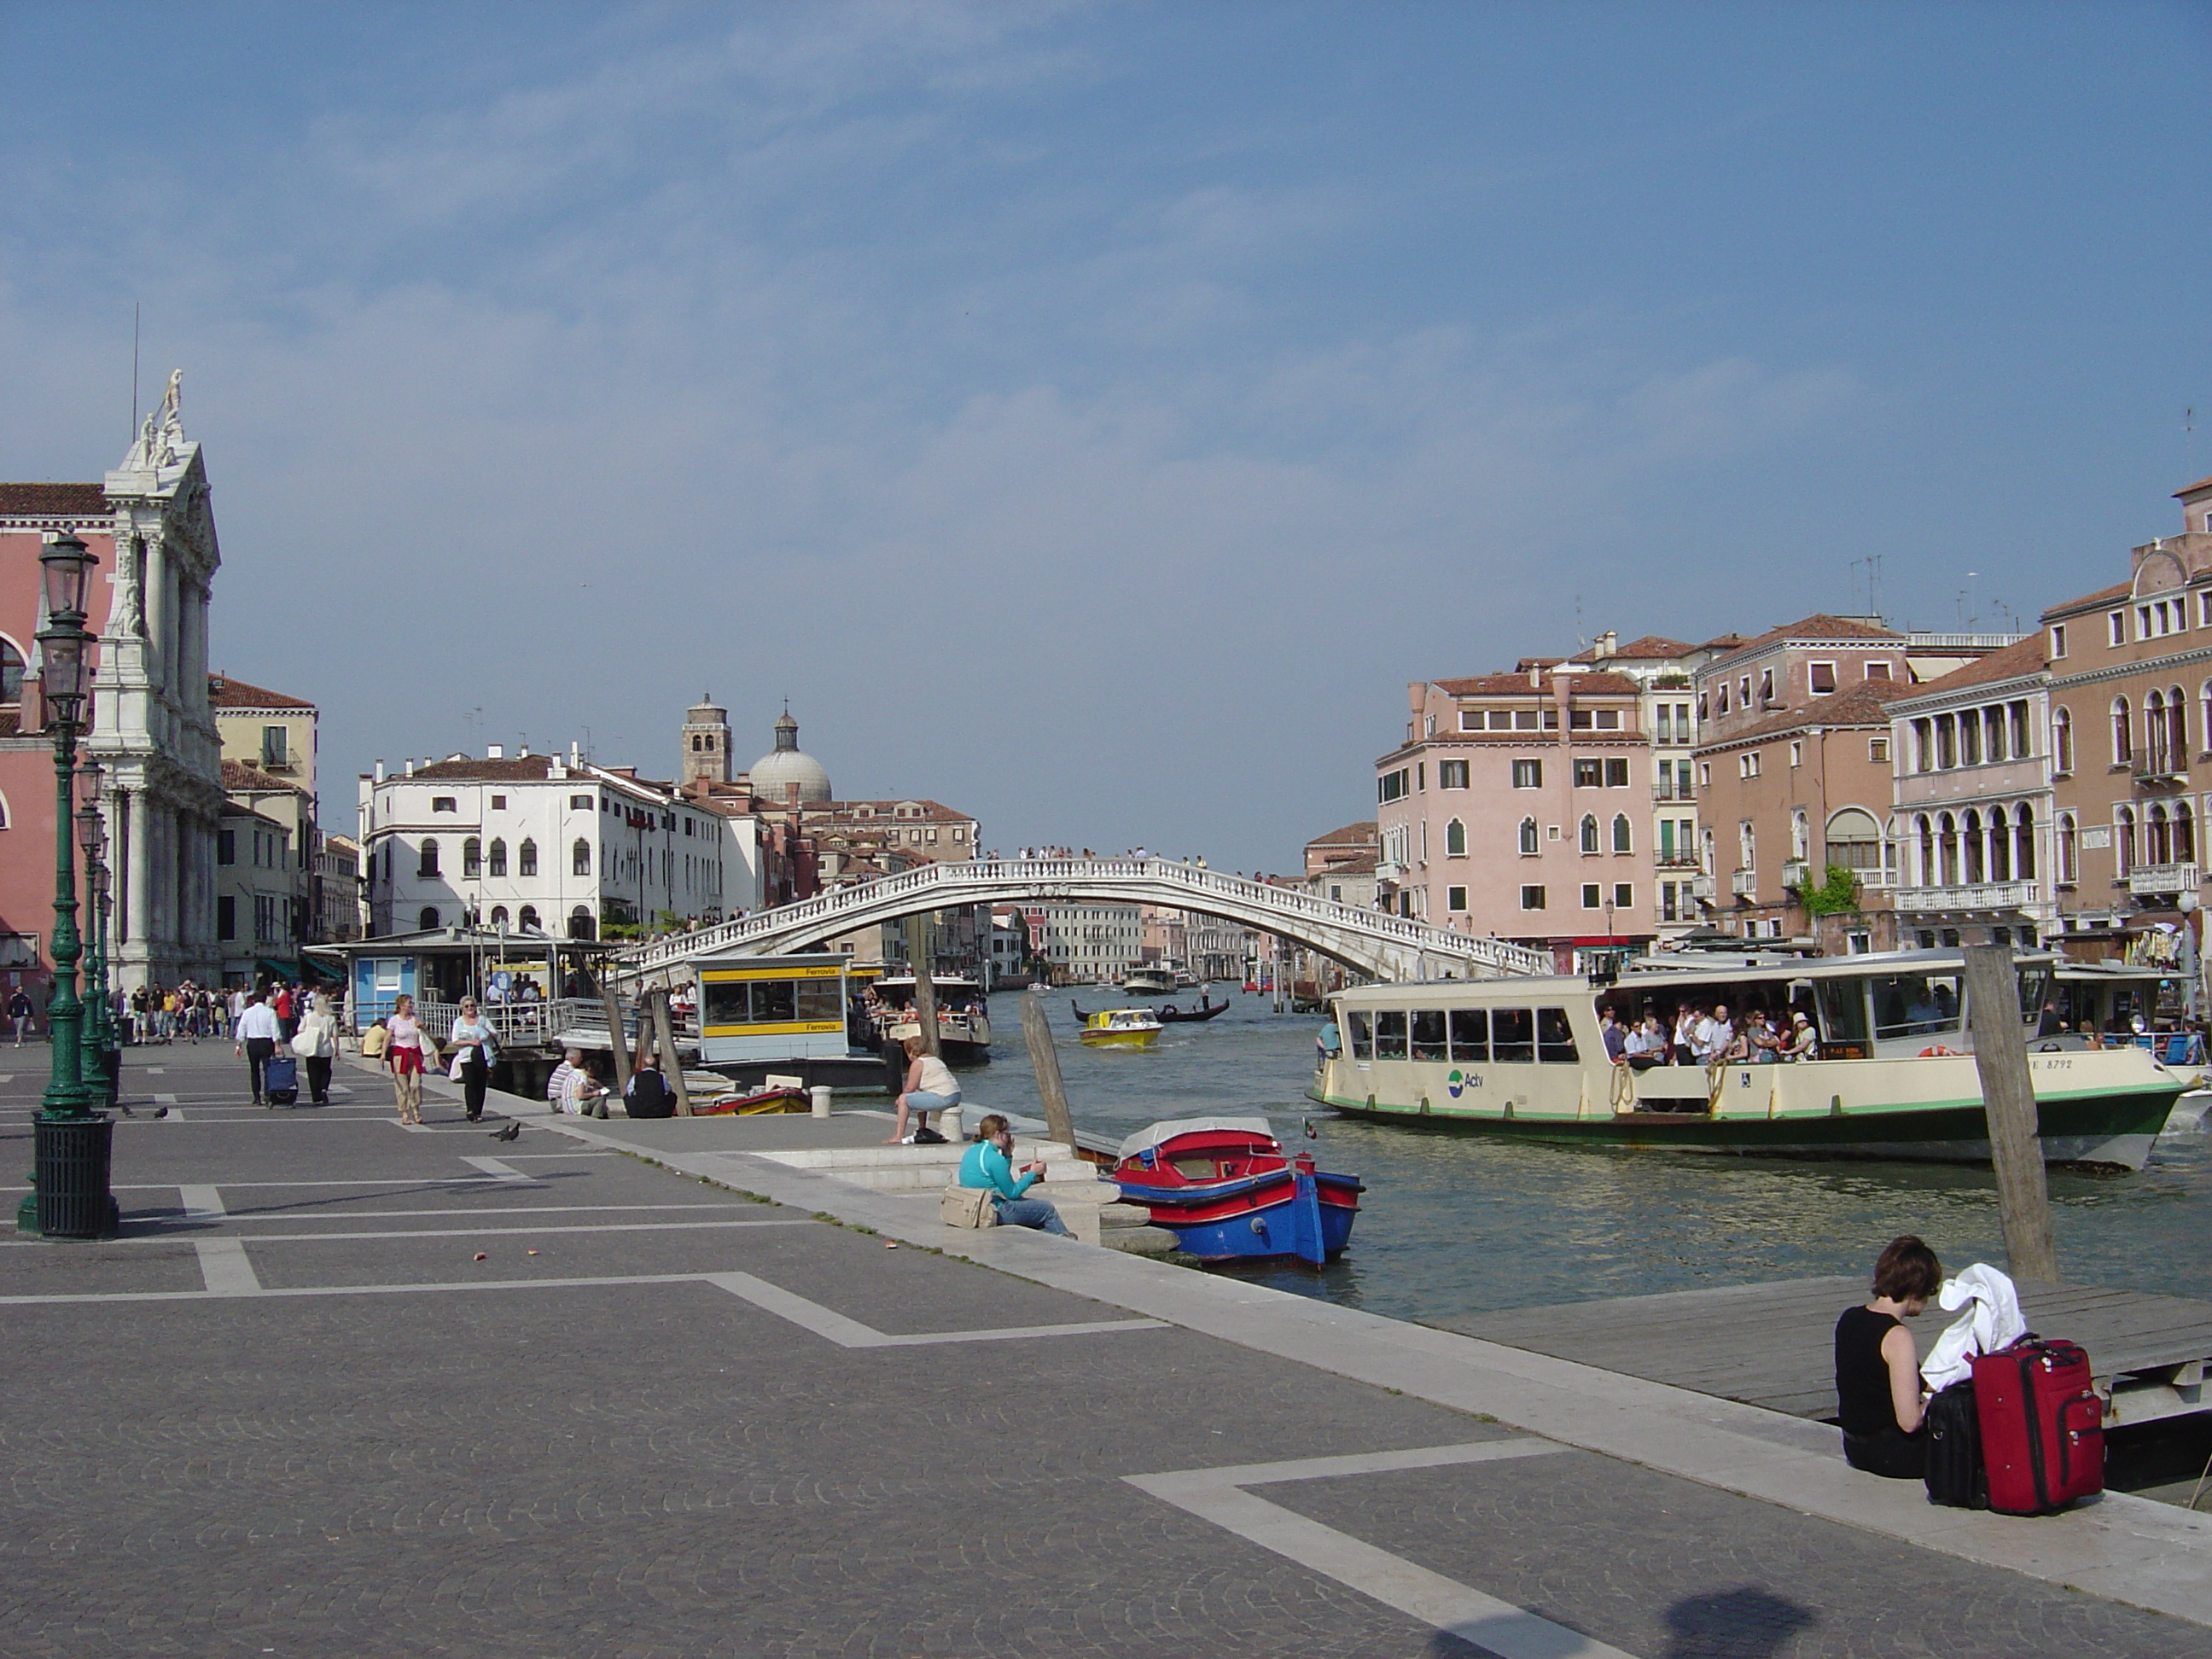 Tradewinds Vacations Welcomes You to Enjoy Venice